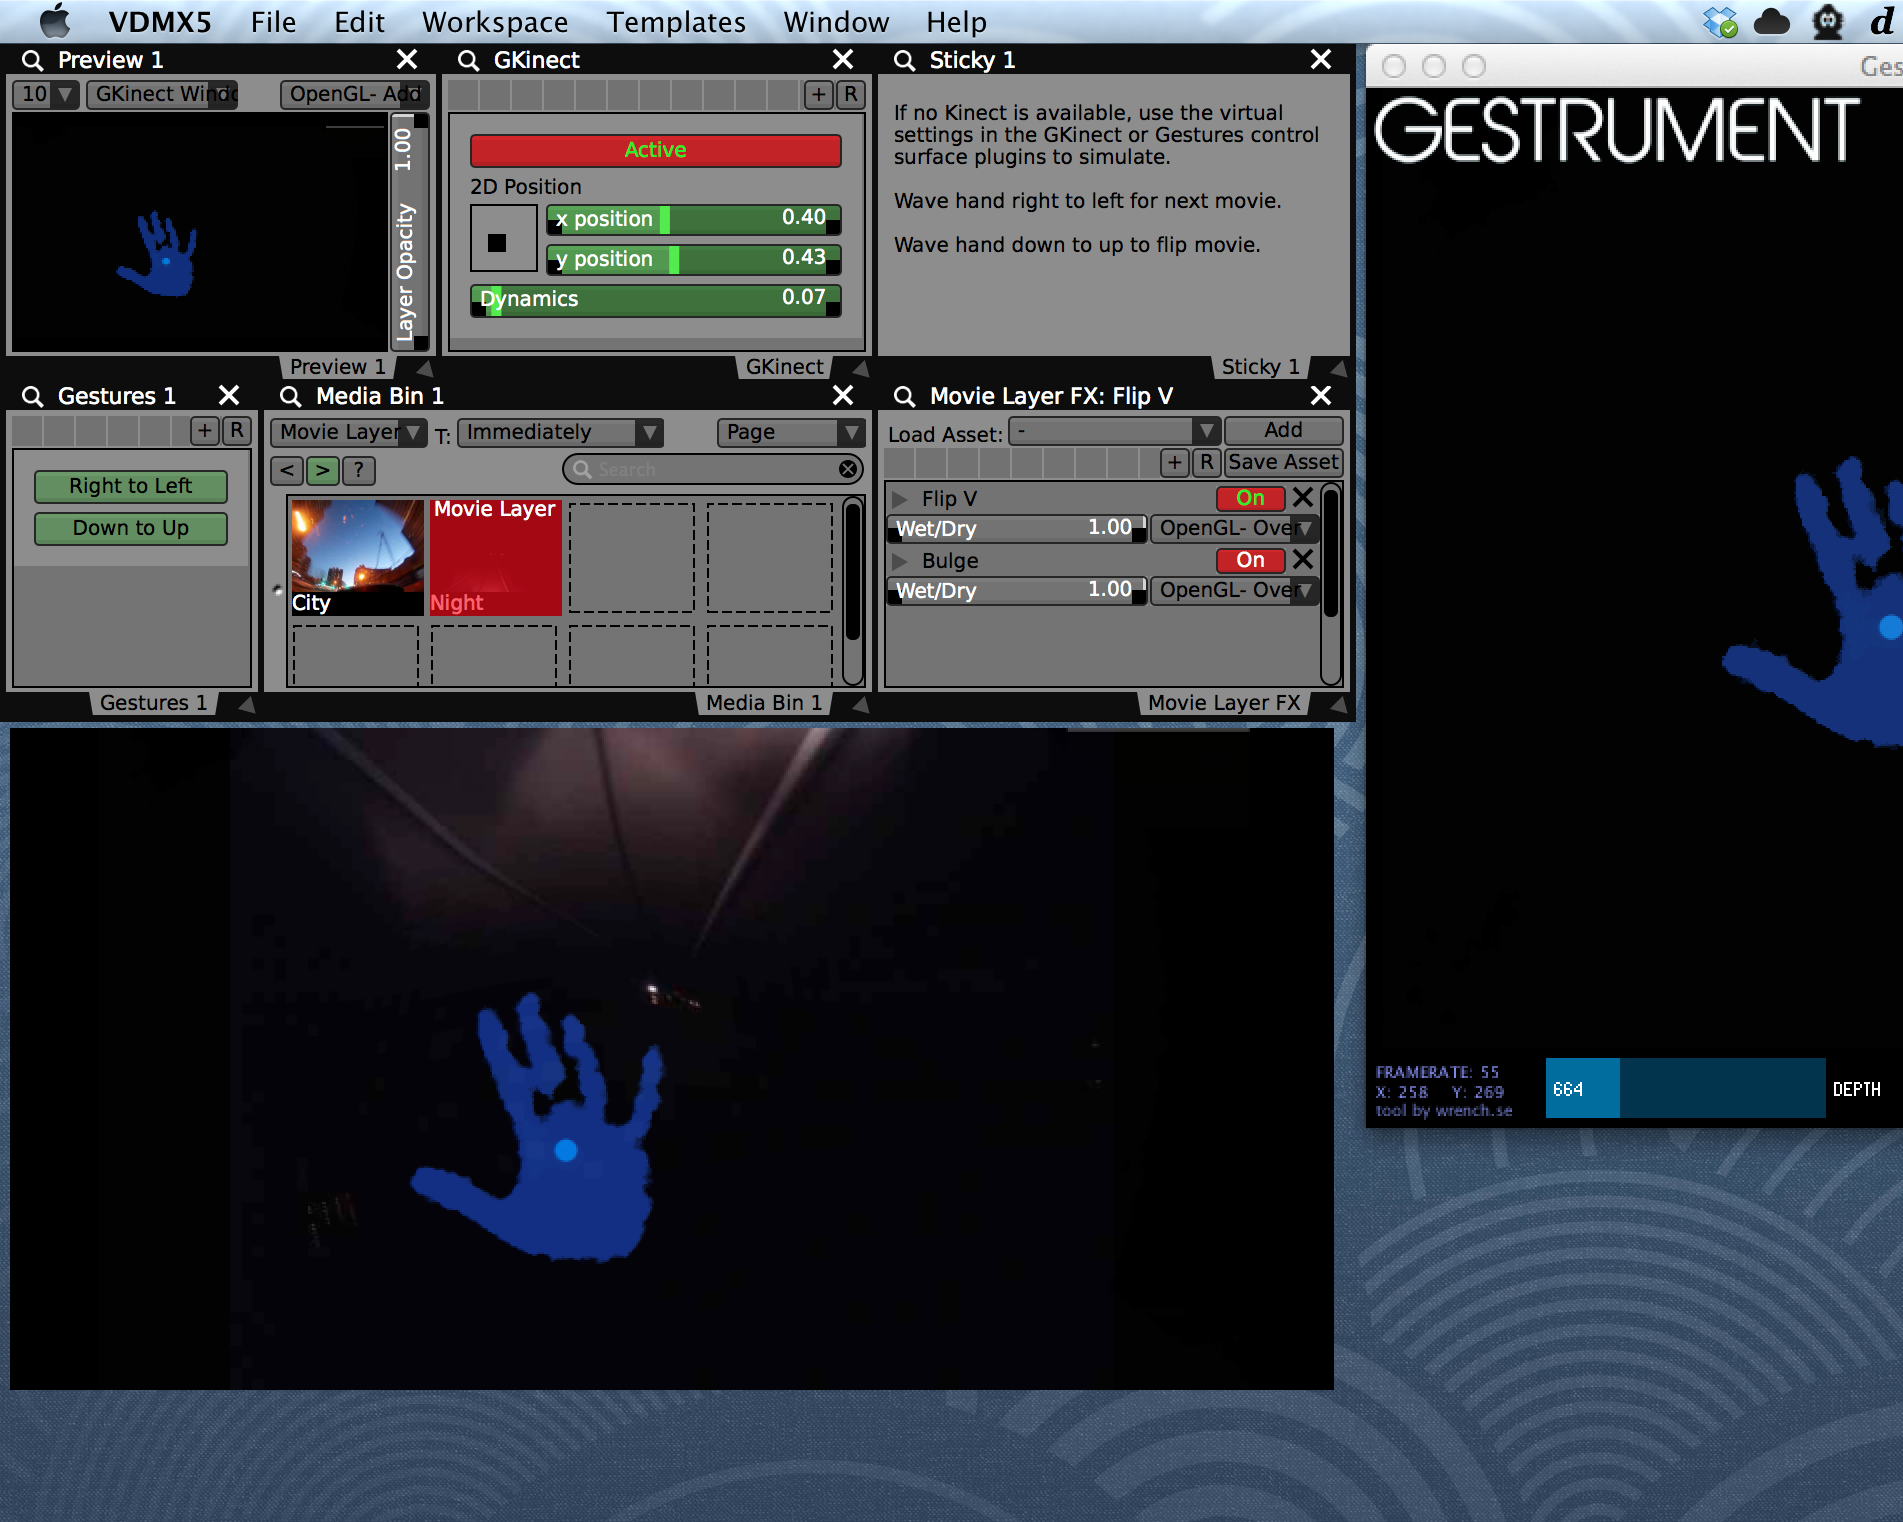 Completed VDMX project with 'Right to Left' and 'Bottom to Top' hand wave gestures.